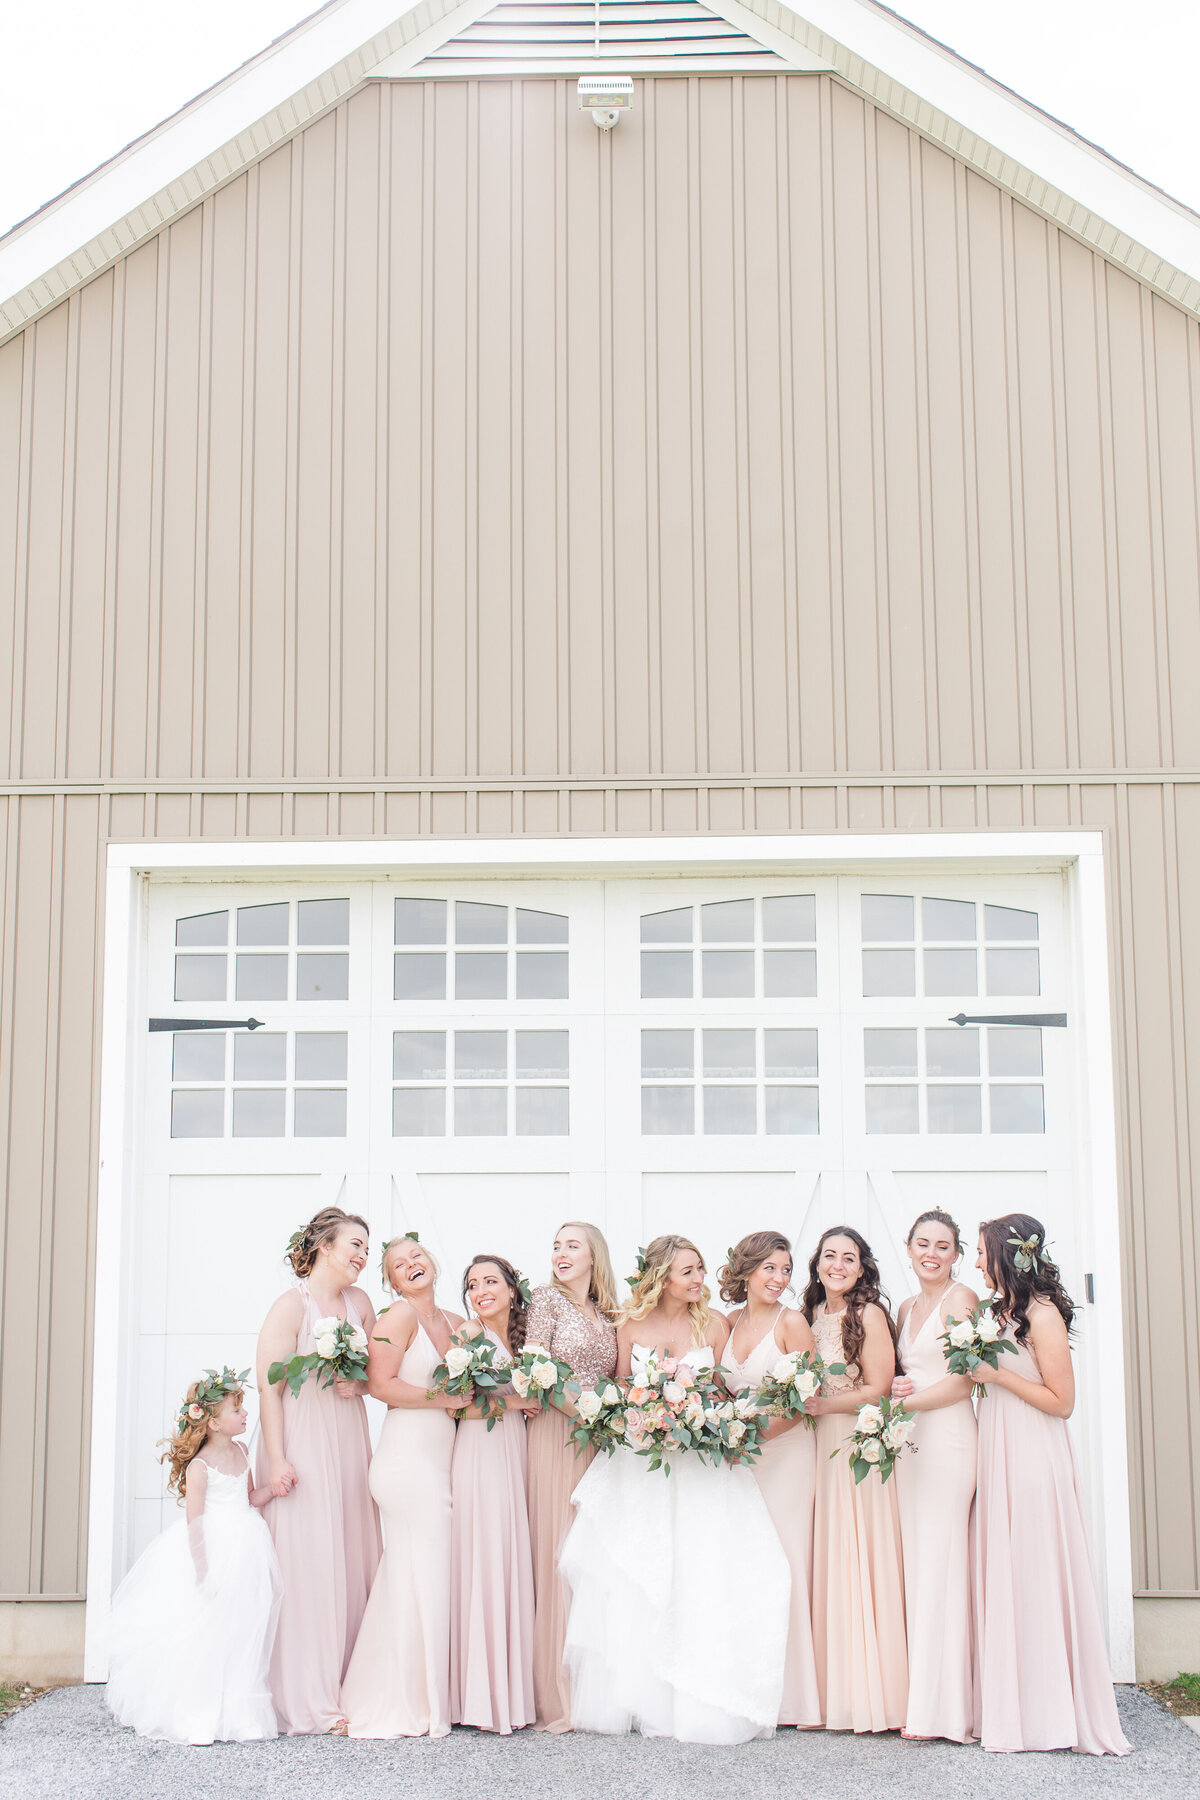 Wyndridge_Farm_Wedding_Photographer-184